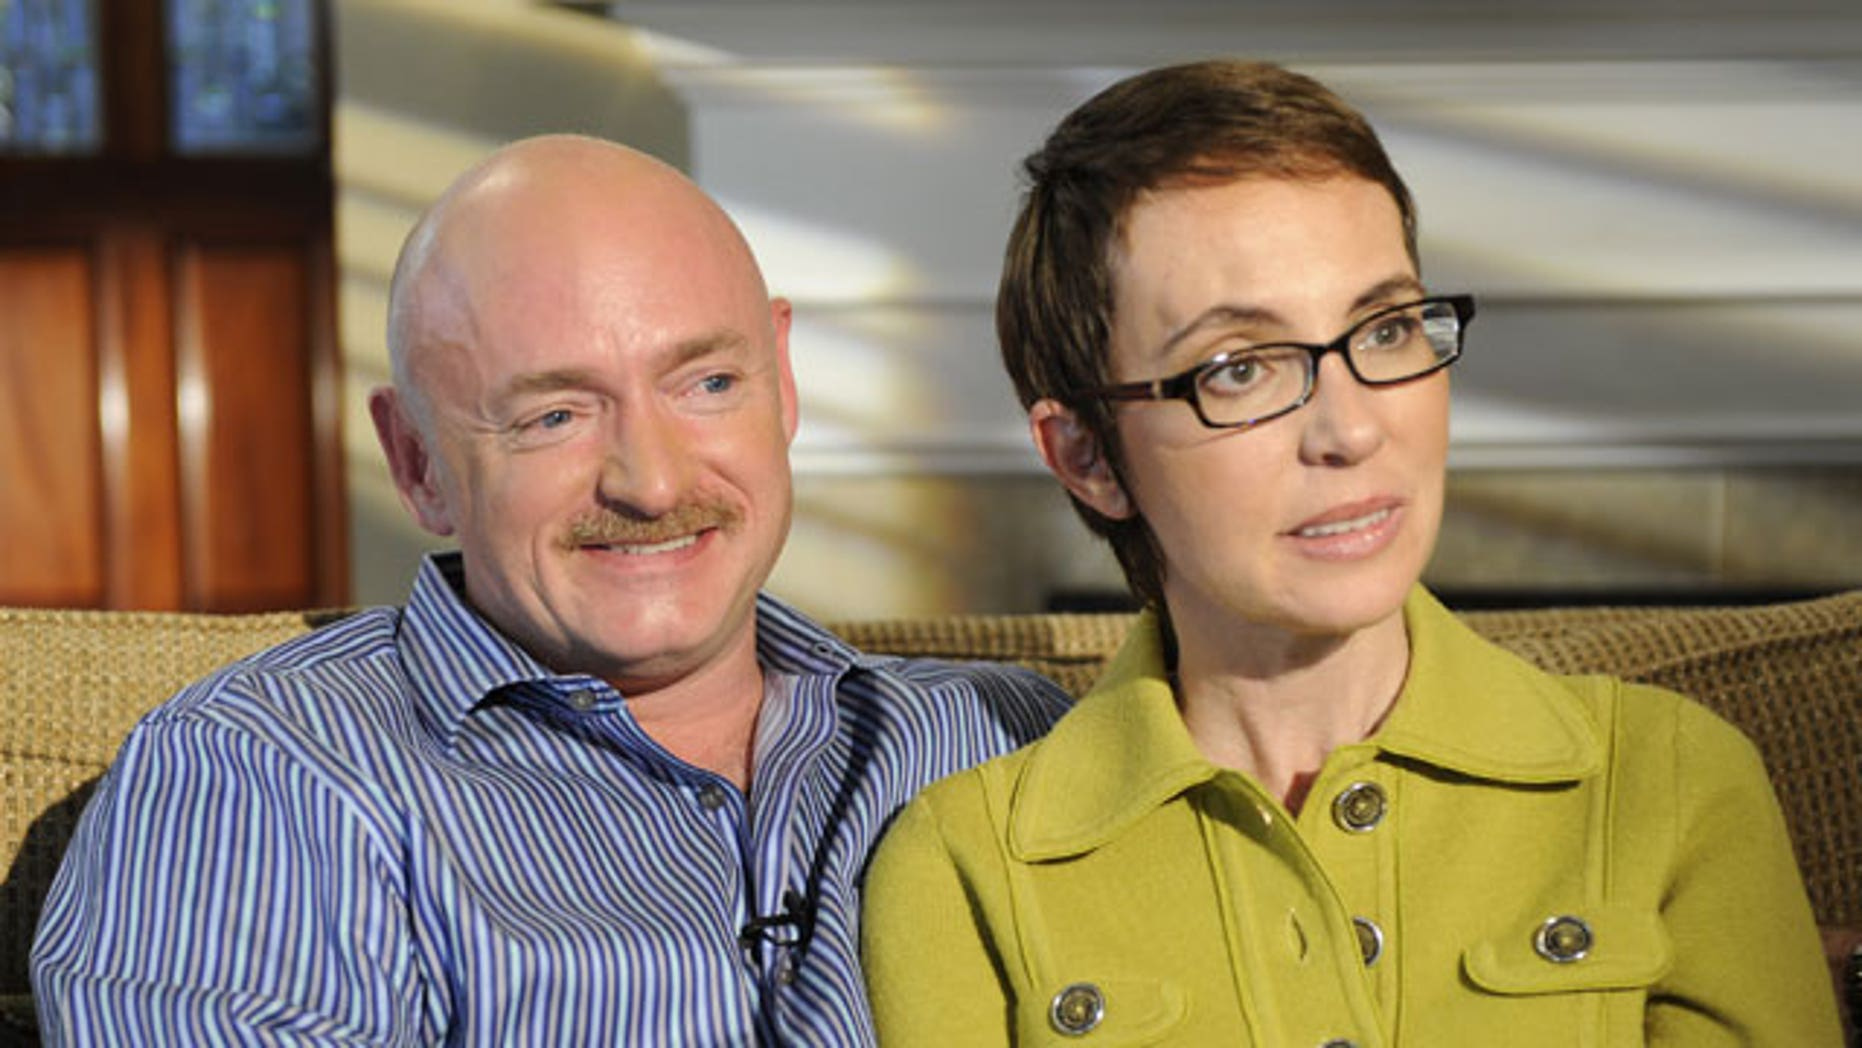 November 14, 2011: In this undated photo provided by ABC, U.S. Rep. Gabrielle Giffords and husband Mark Kelly are interviewed by Diane Sawyer on ABC's 20/20.